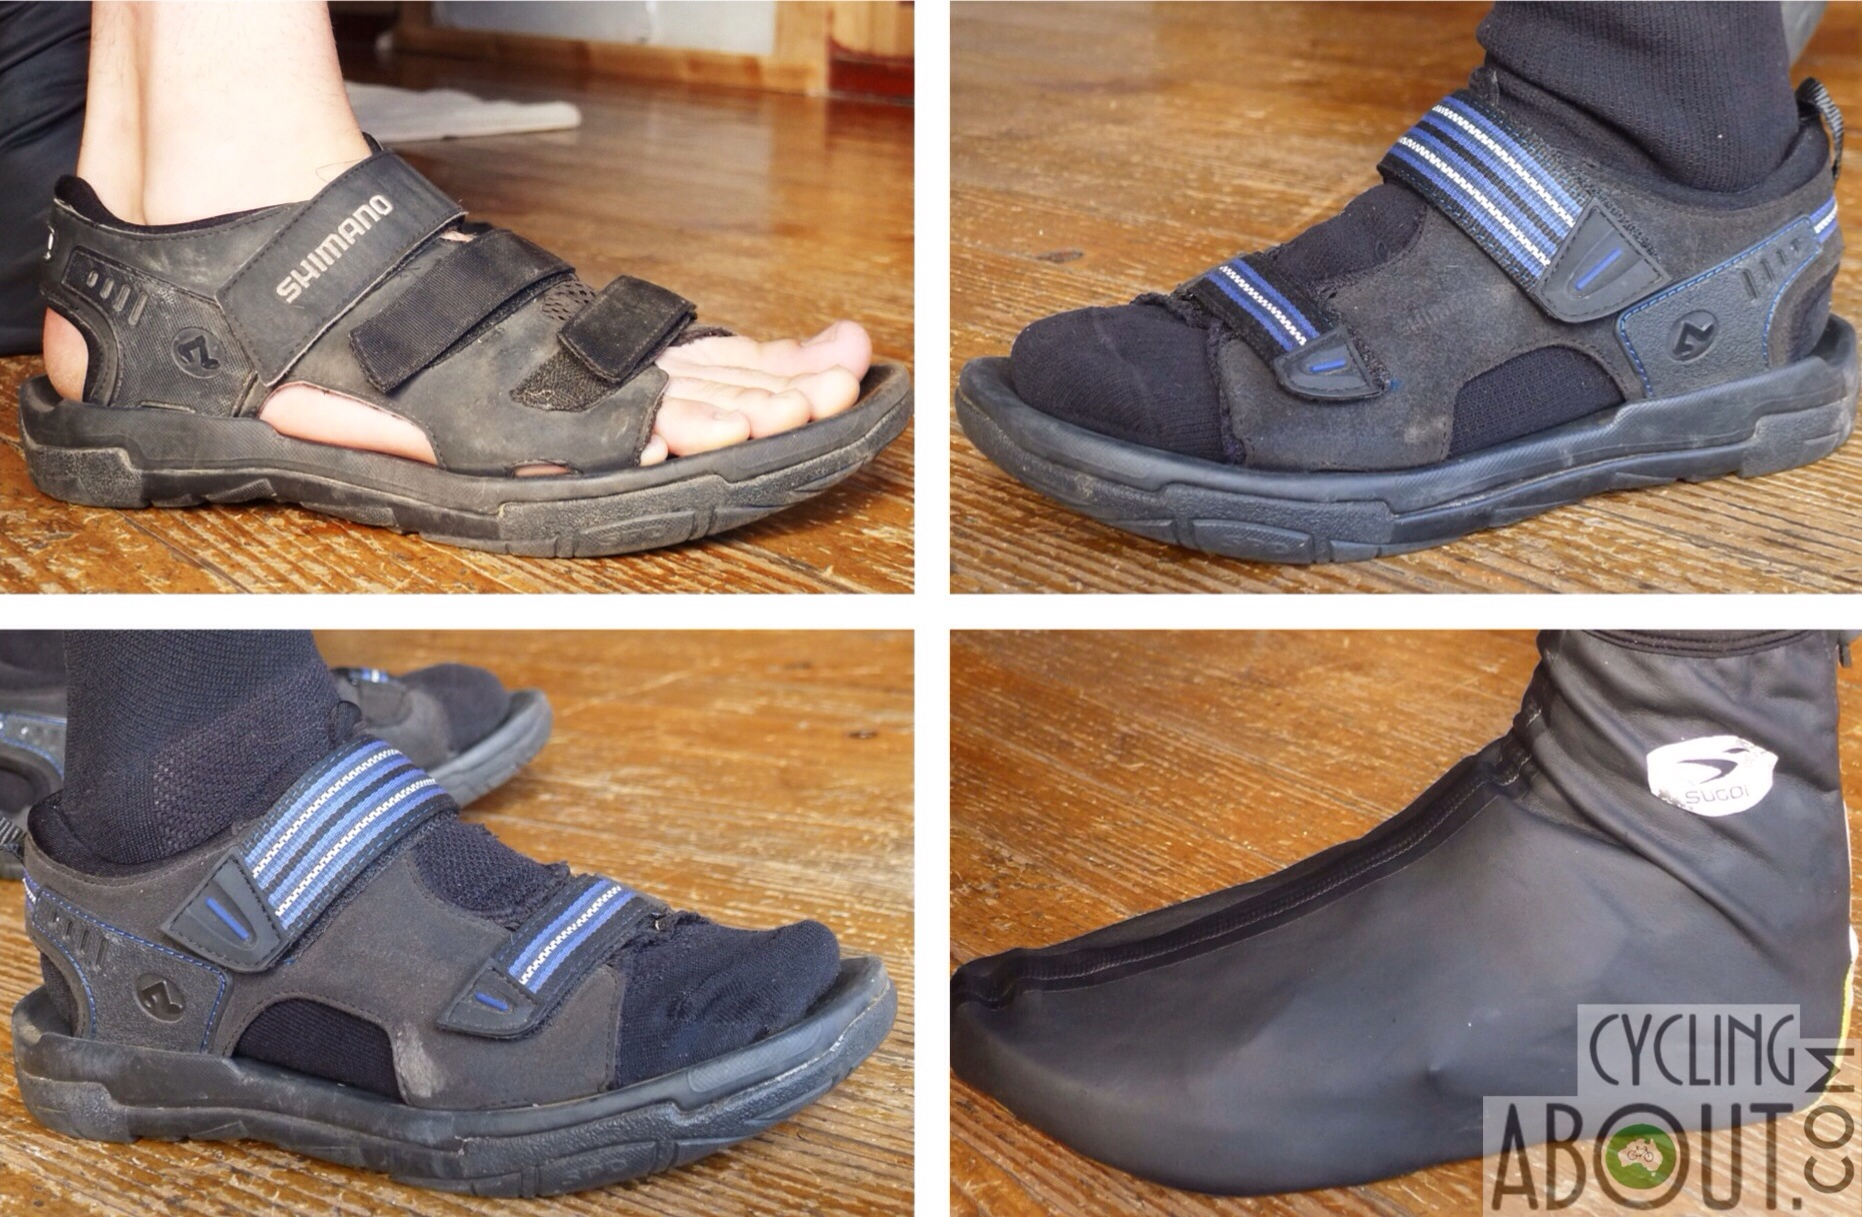 Cycling SPD Sandals: The Most Versatile